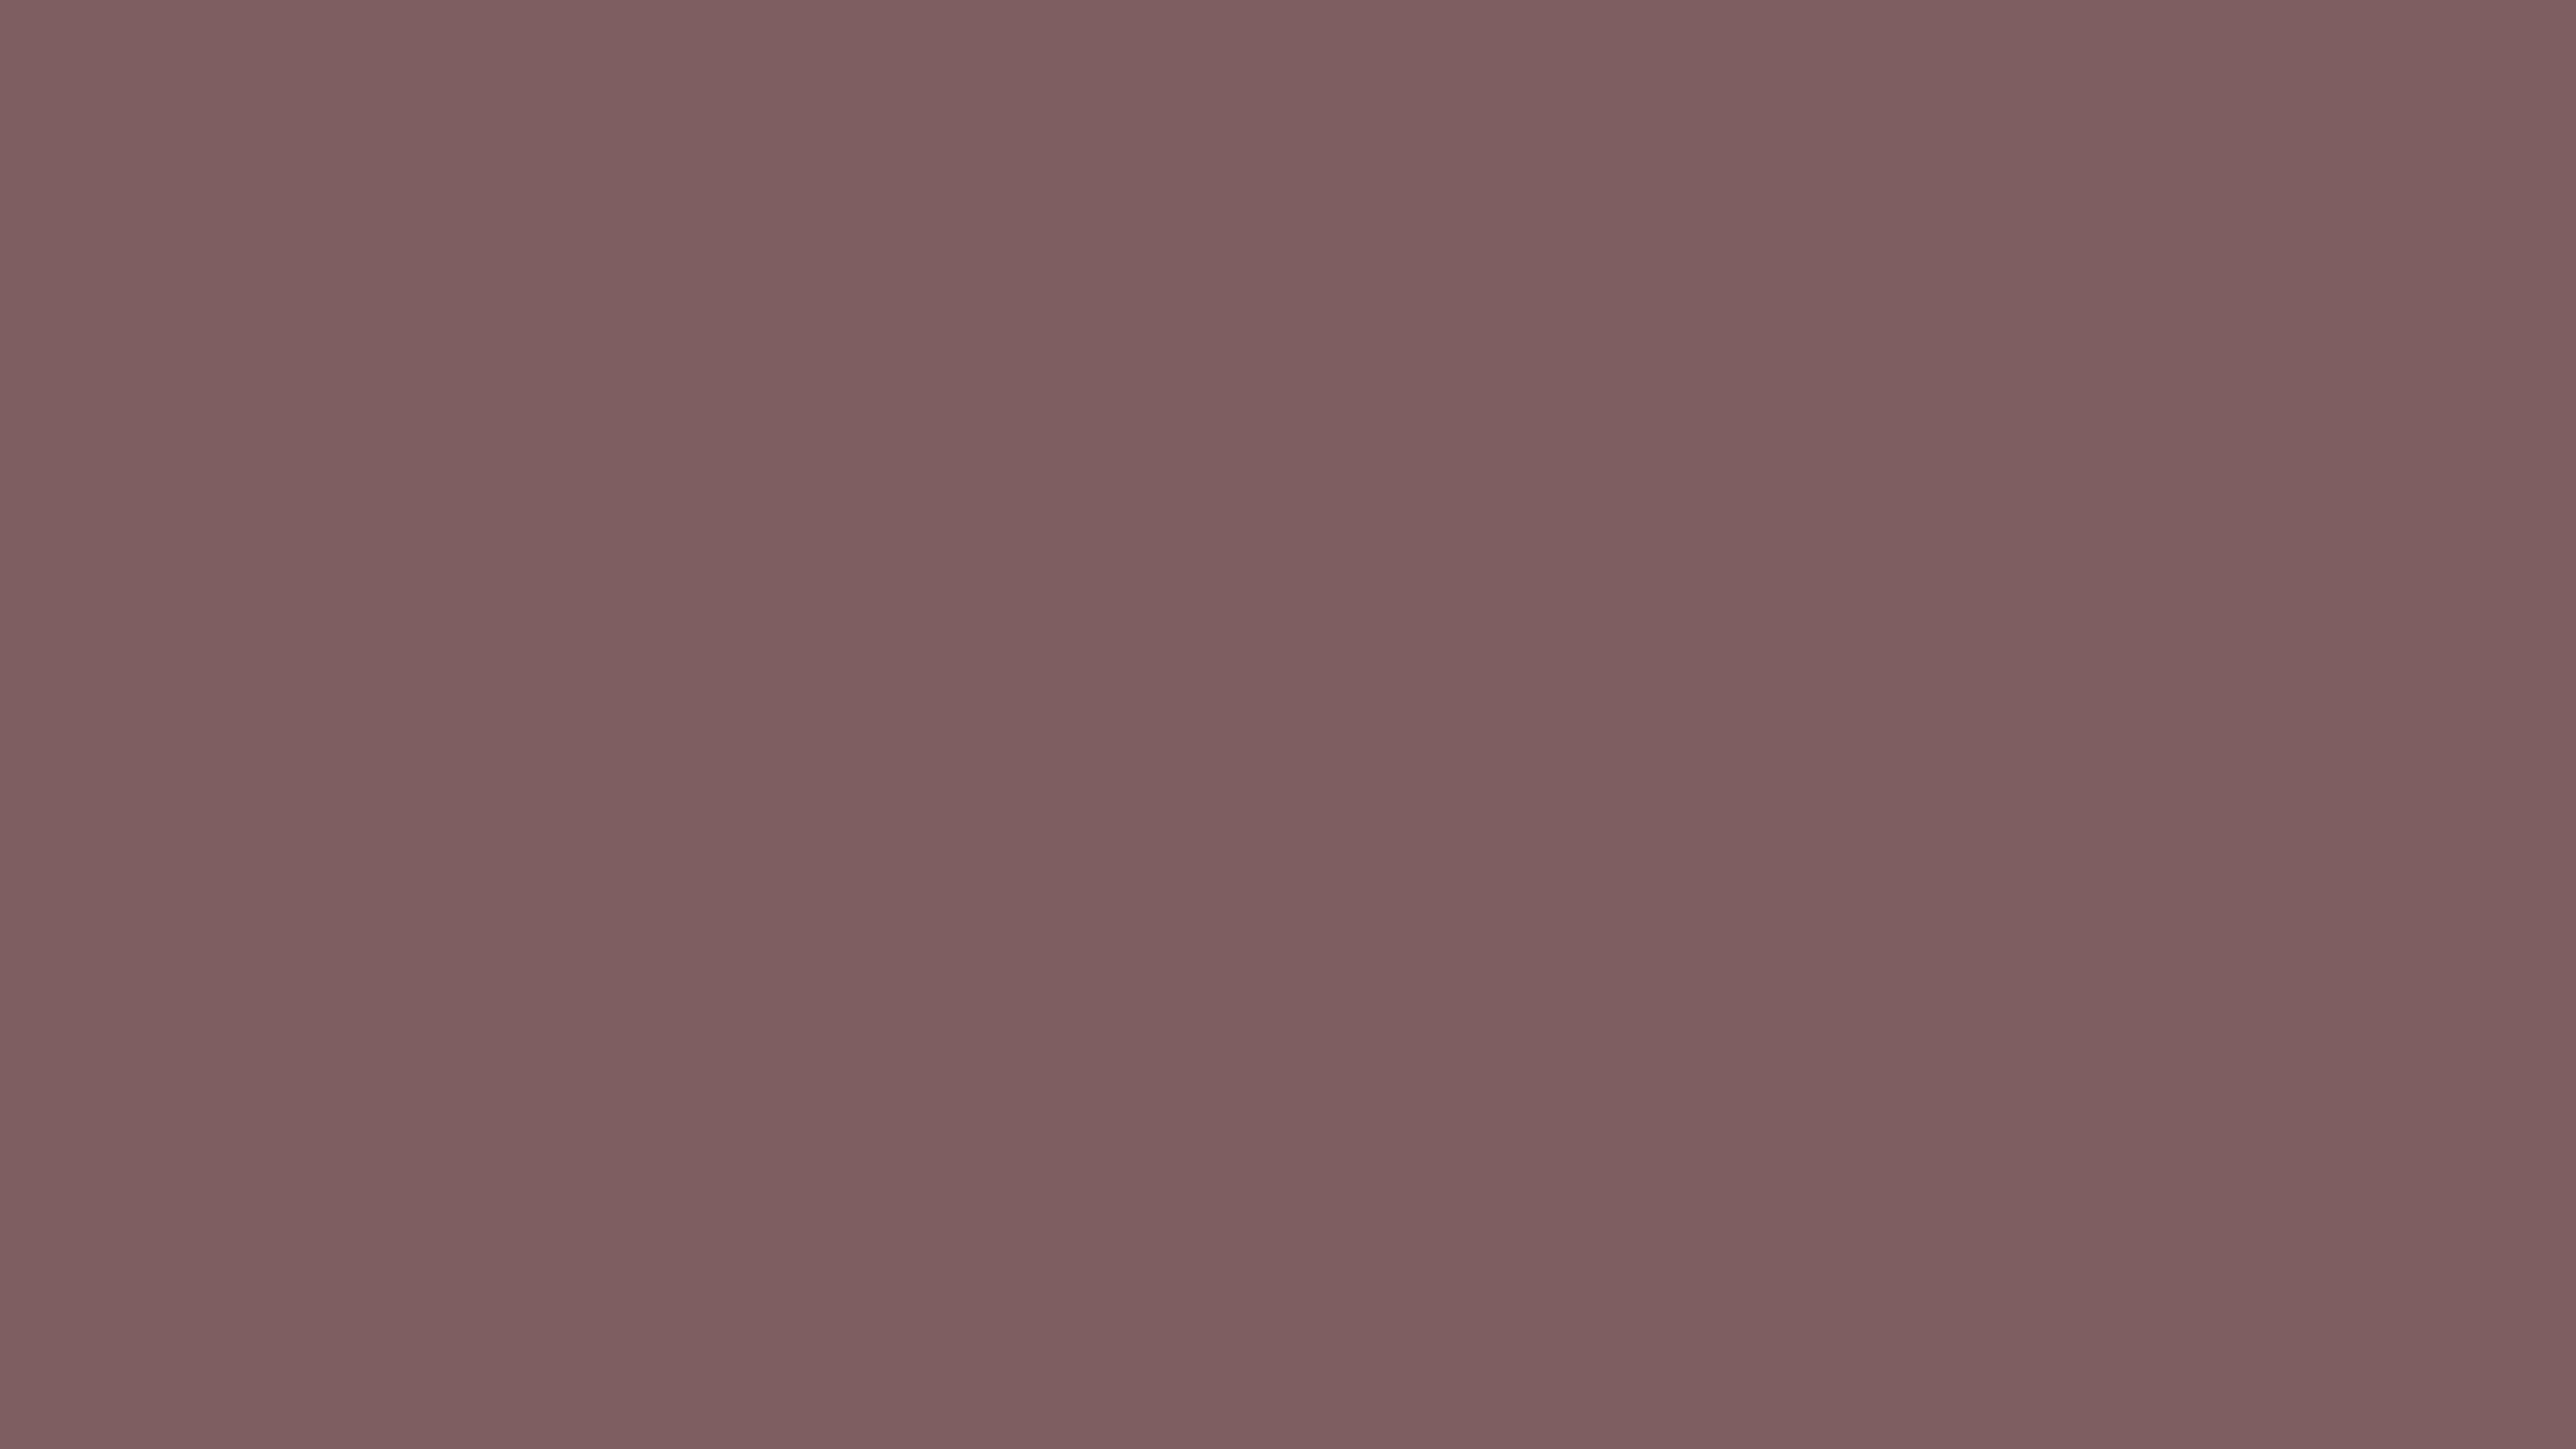 3840x2160 Deep Taupe Solid Color Background